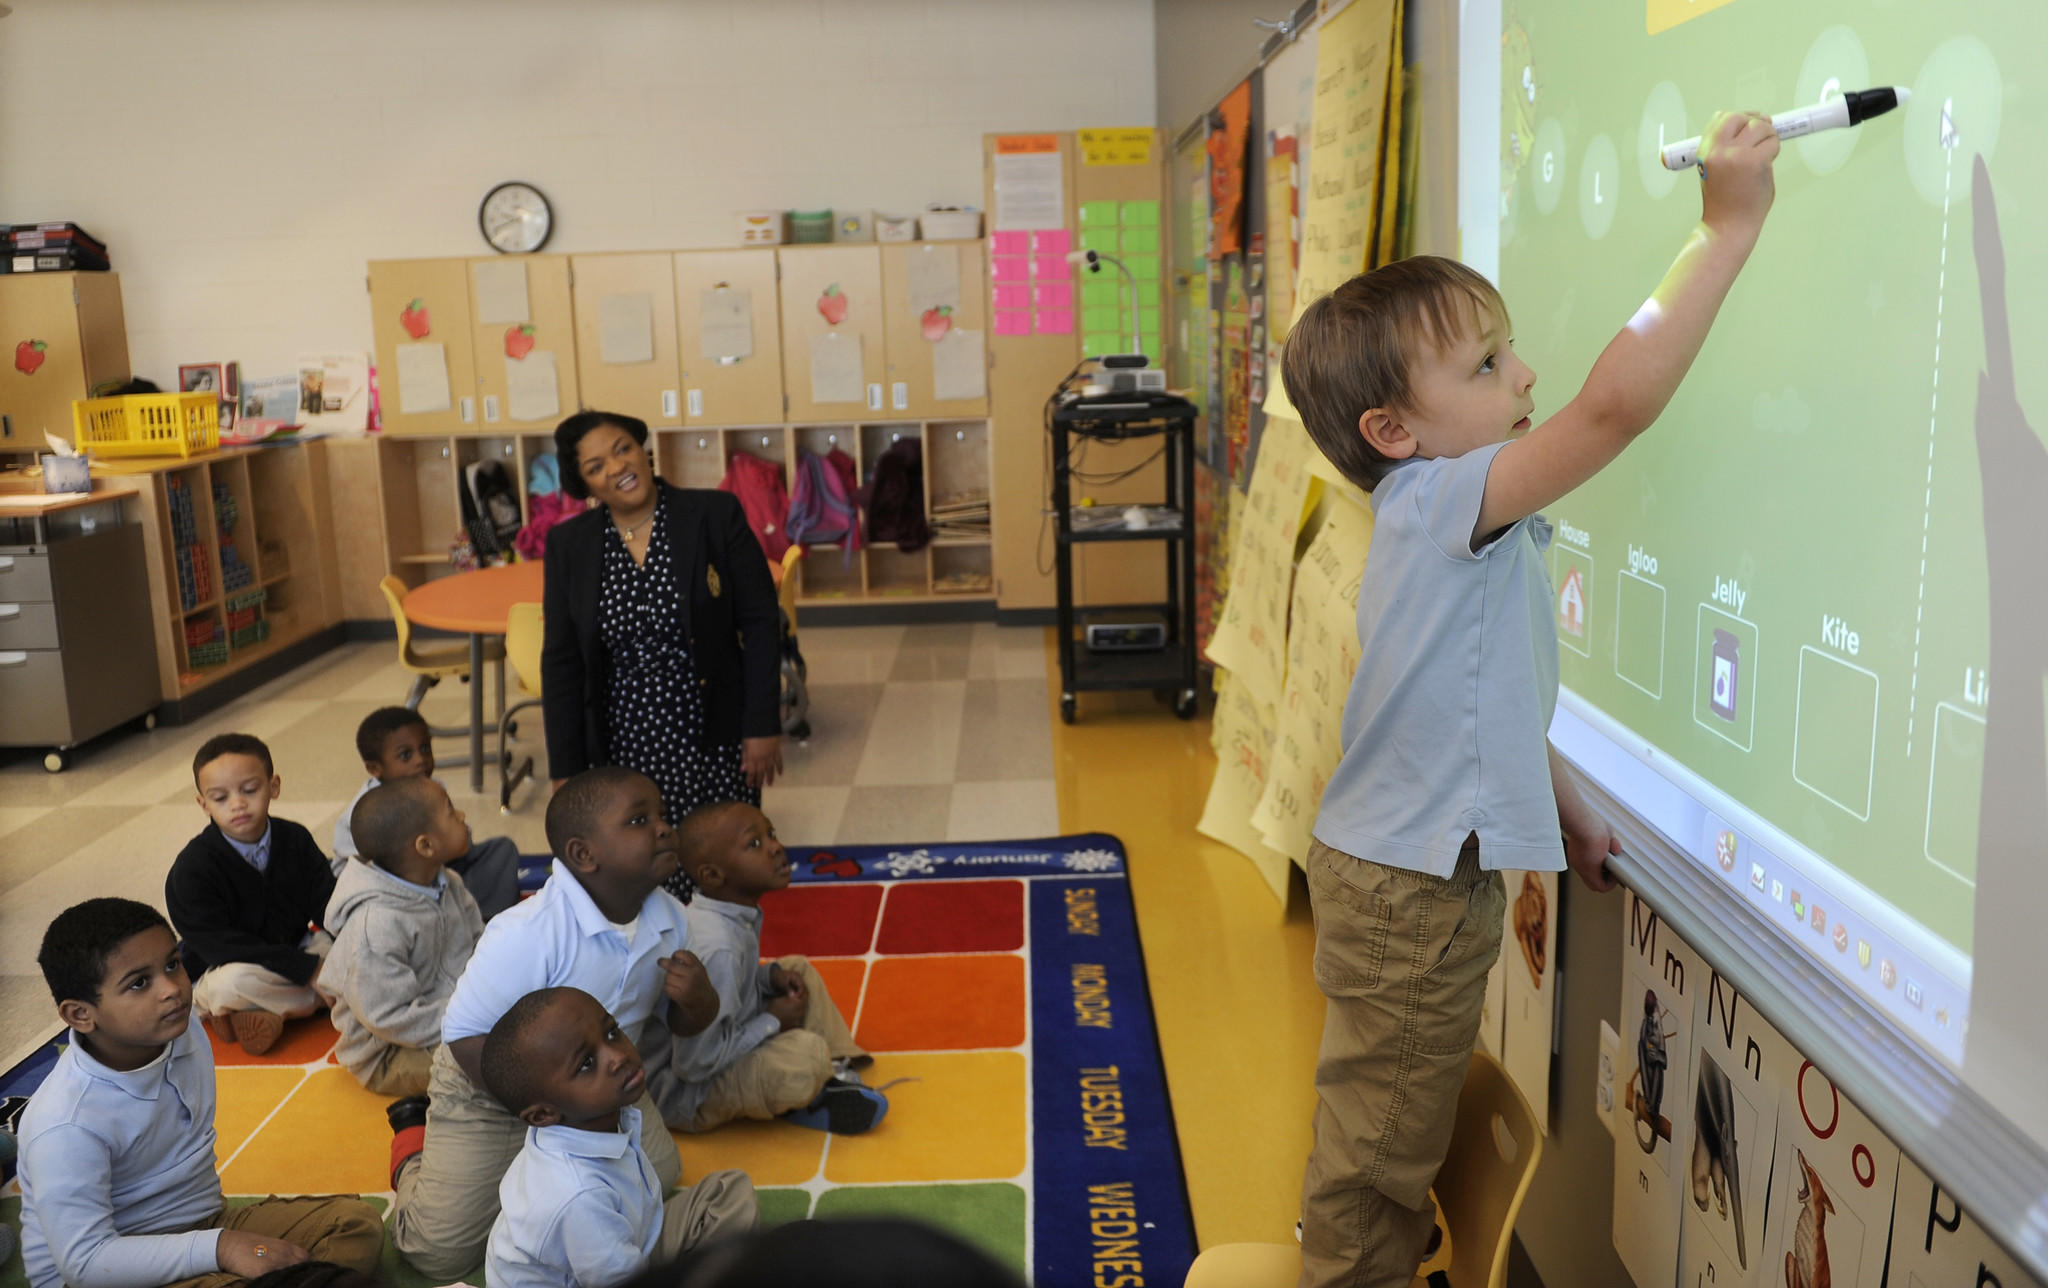 Pre-K student August Green uses a white board to identify letters in his classroom. Principal Amanda Rice is sitting in background with students.